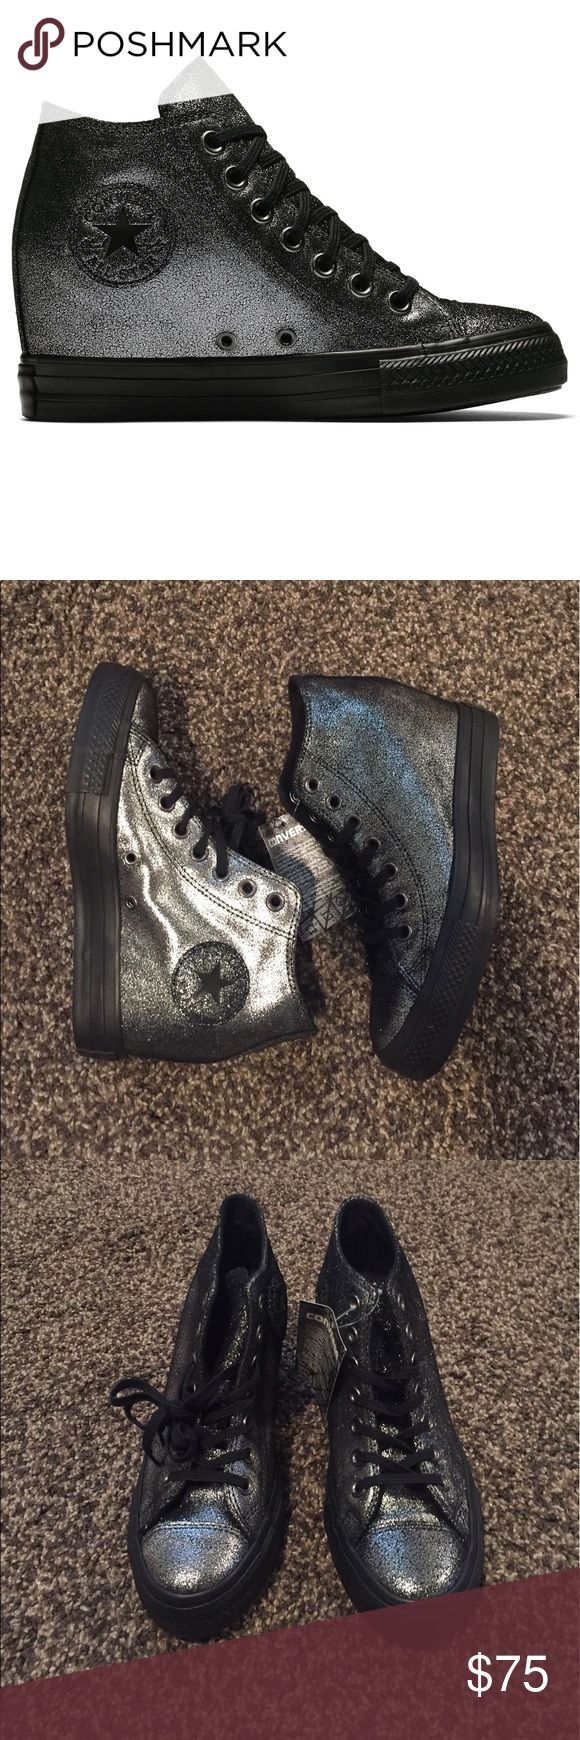 Converse lux wedge sneakers in black and silver Brand New without the box.                                       Hidden wedge sneaker Canvas upper  Lace-up vamp Converse logo at ankle Hidden wedge heel. Converse Shoes Sneakers